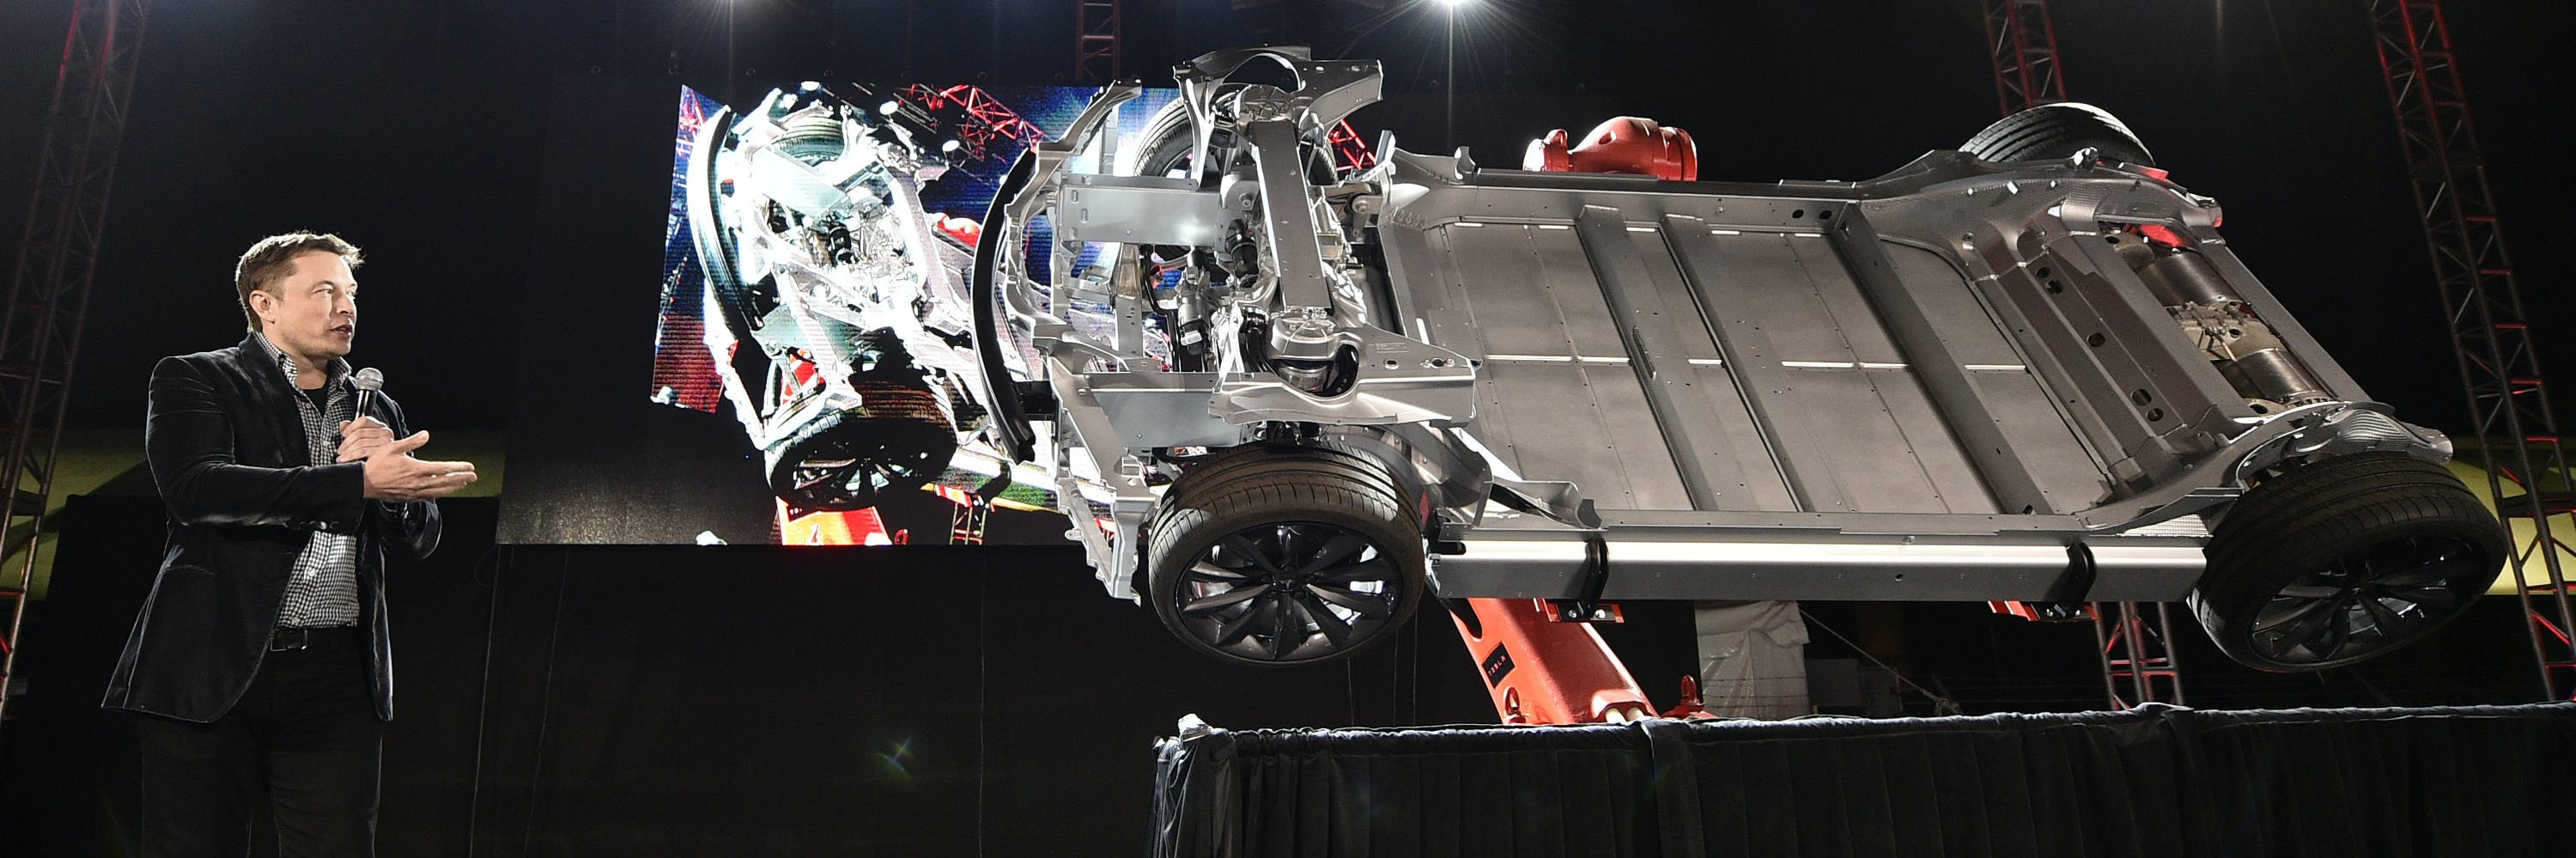 Elon Musk, CEO of Tesla, unveils the dual engine chassis of the new Tesla 'D' model at the Hawthorne Airport October 09, 2014 in Hawthorne, California. The 'D' is the faster  and all-wheel-drive version of the Model S electric sedan, capable of accelerating to 60 miles per hour in just over 3 seconds.